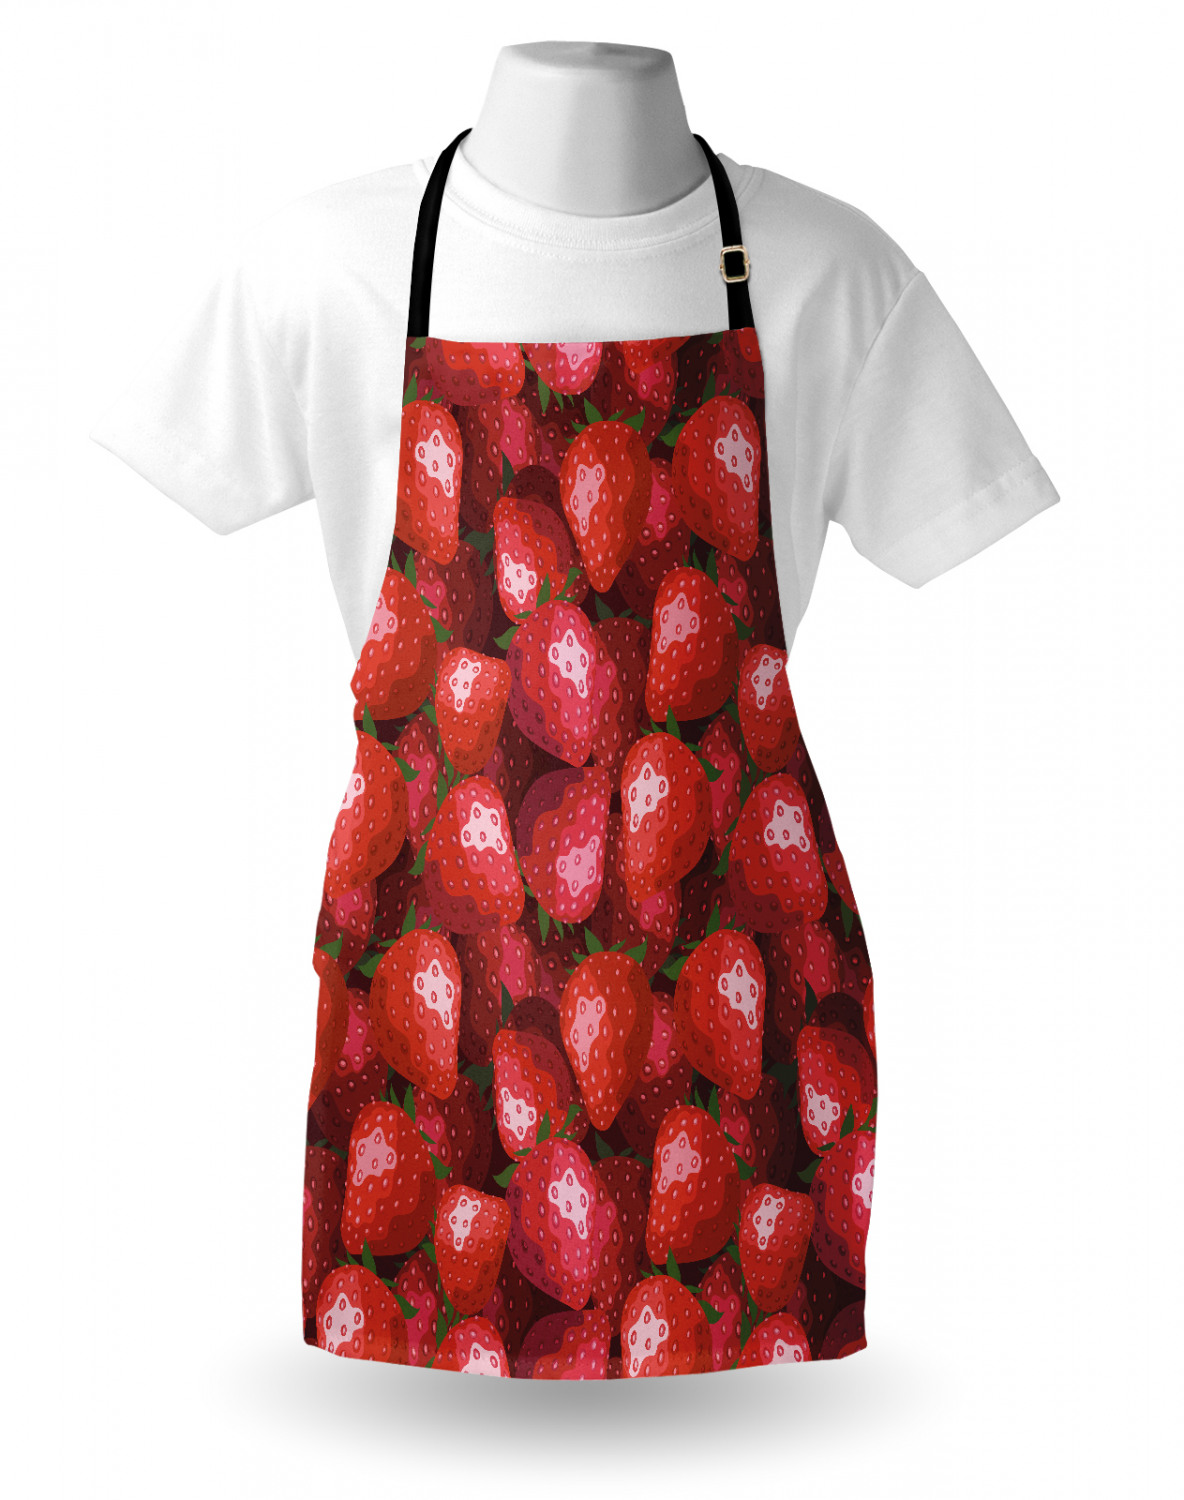 Strawberry T shirt Transfer,bibs,bags and Cushions